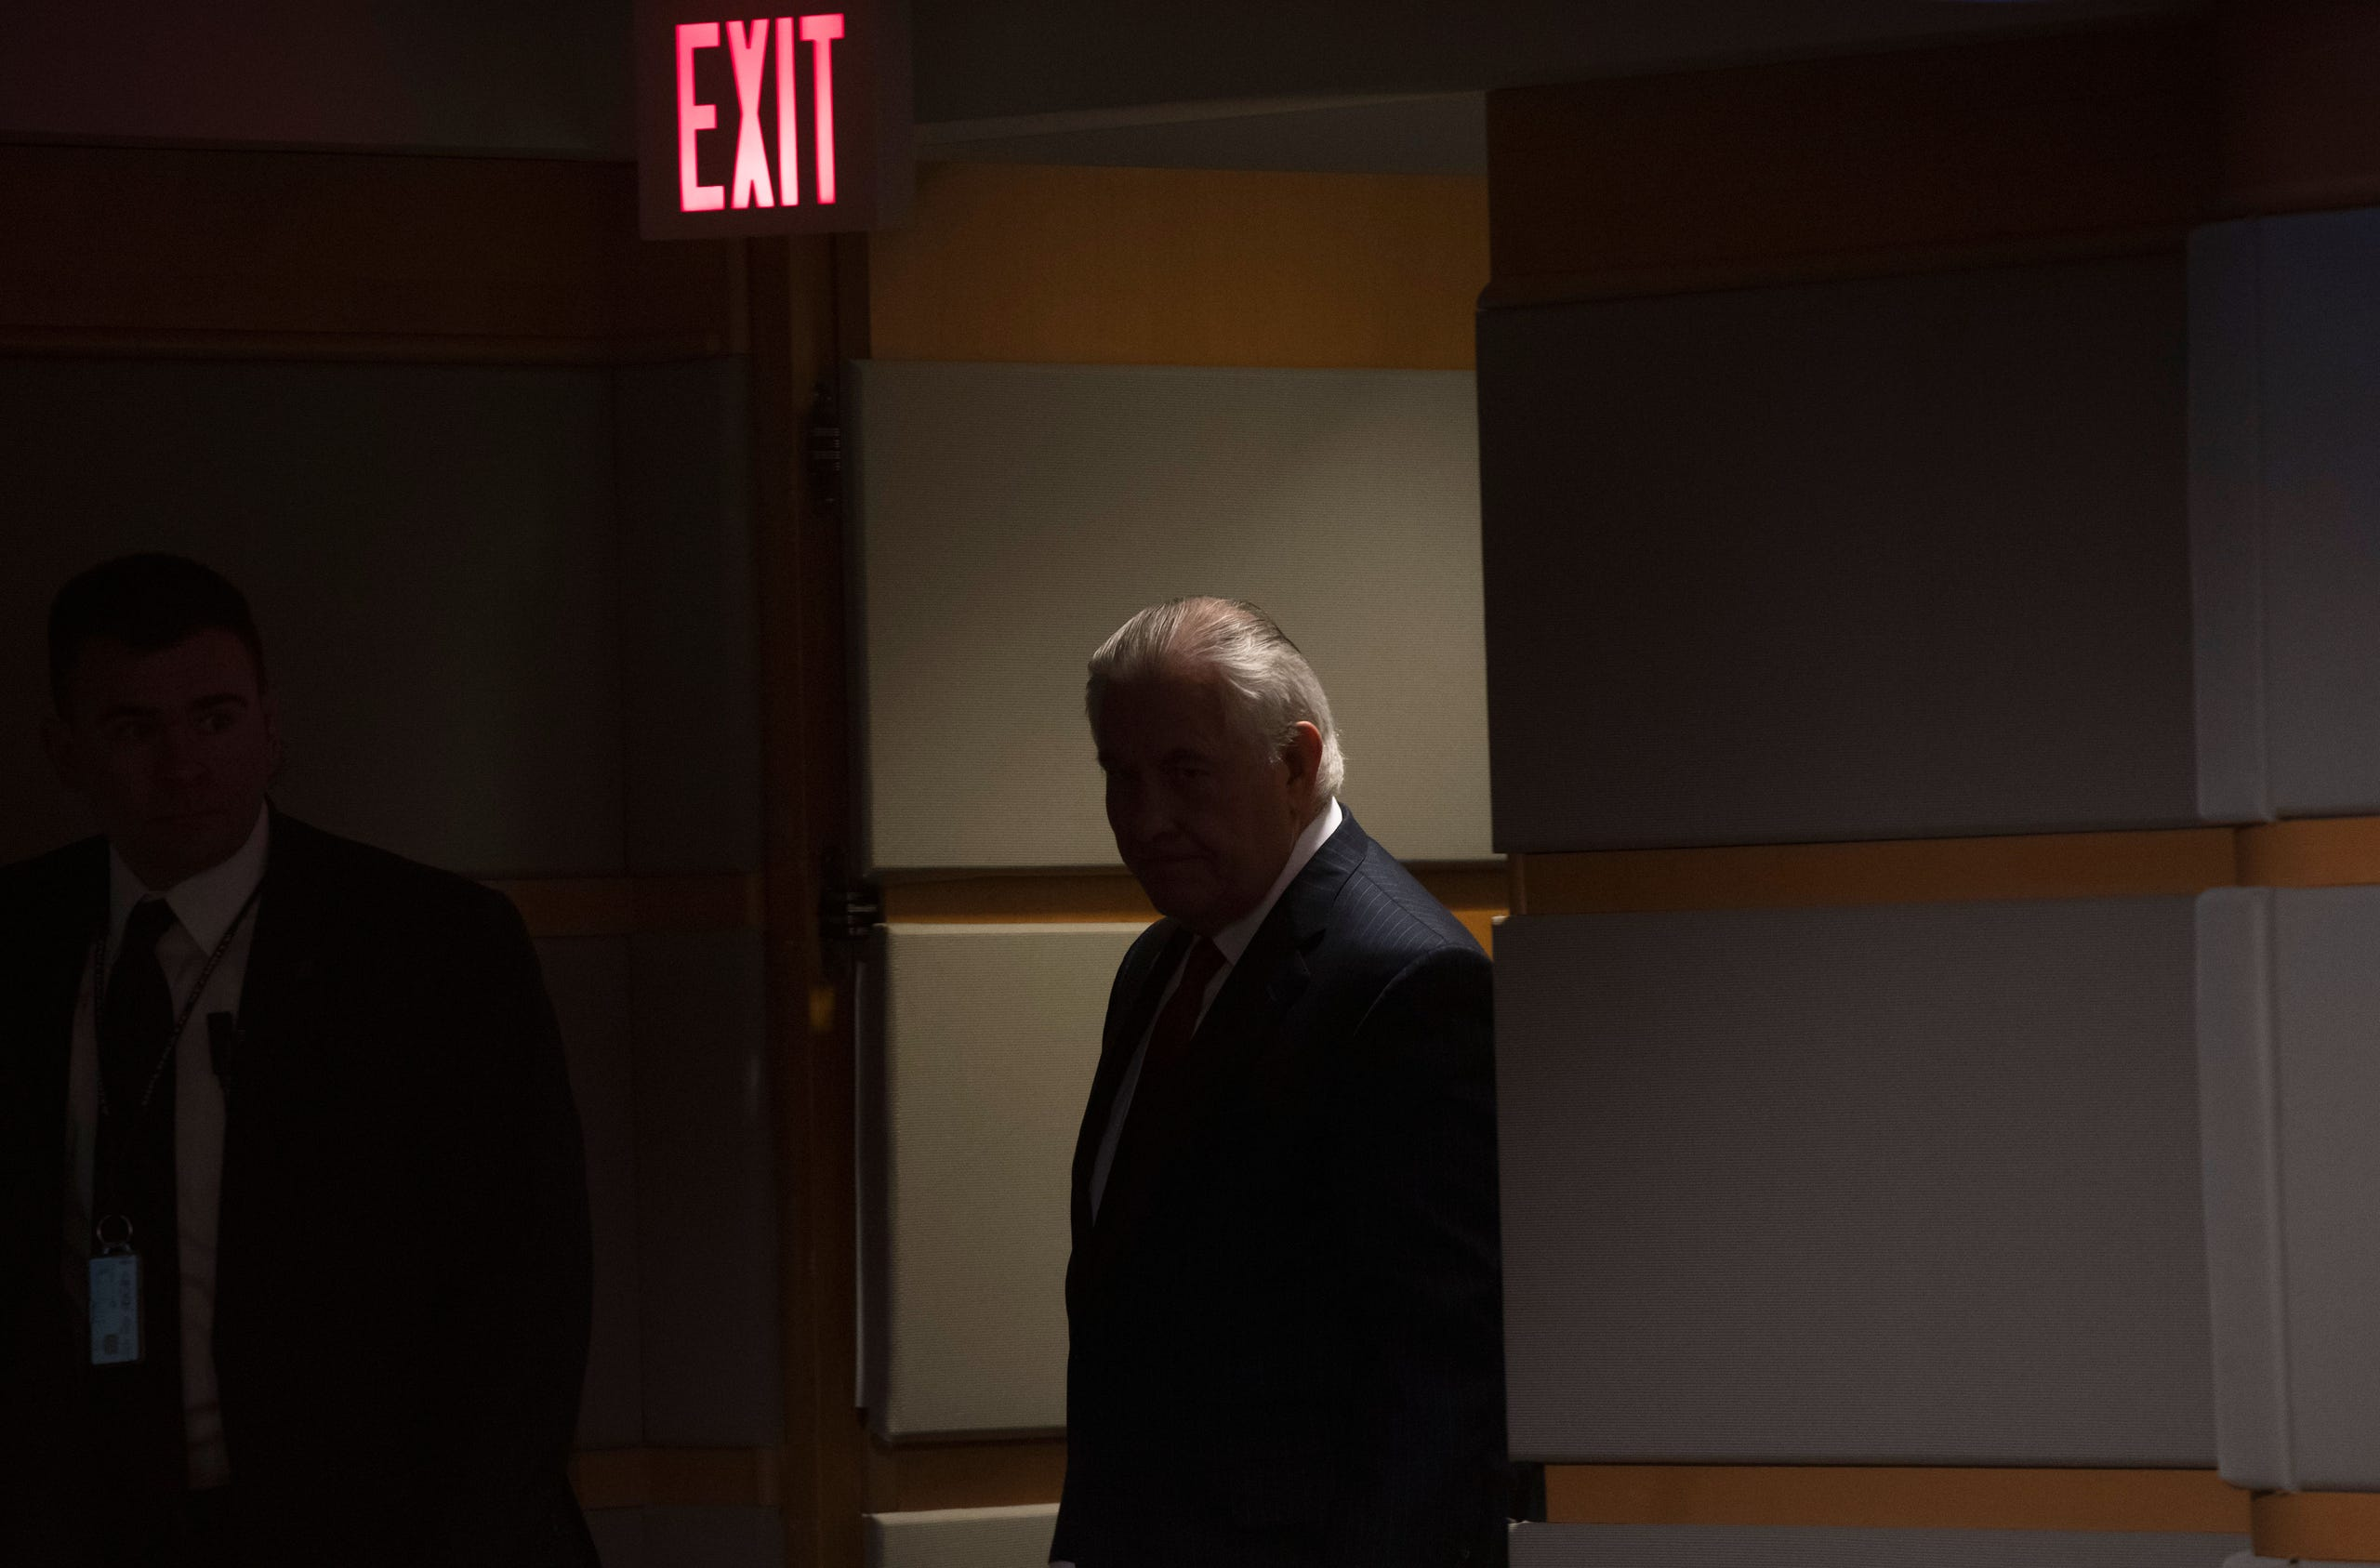 Rex Tillerson, outgoing U.S. Secretary of State arrives to makes a statement after his dismissal at the State Department in Washington, DC, March 13, 2018.